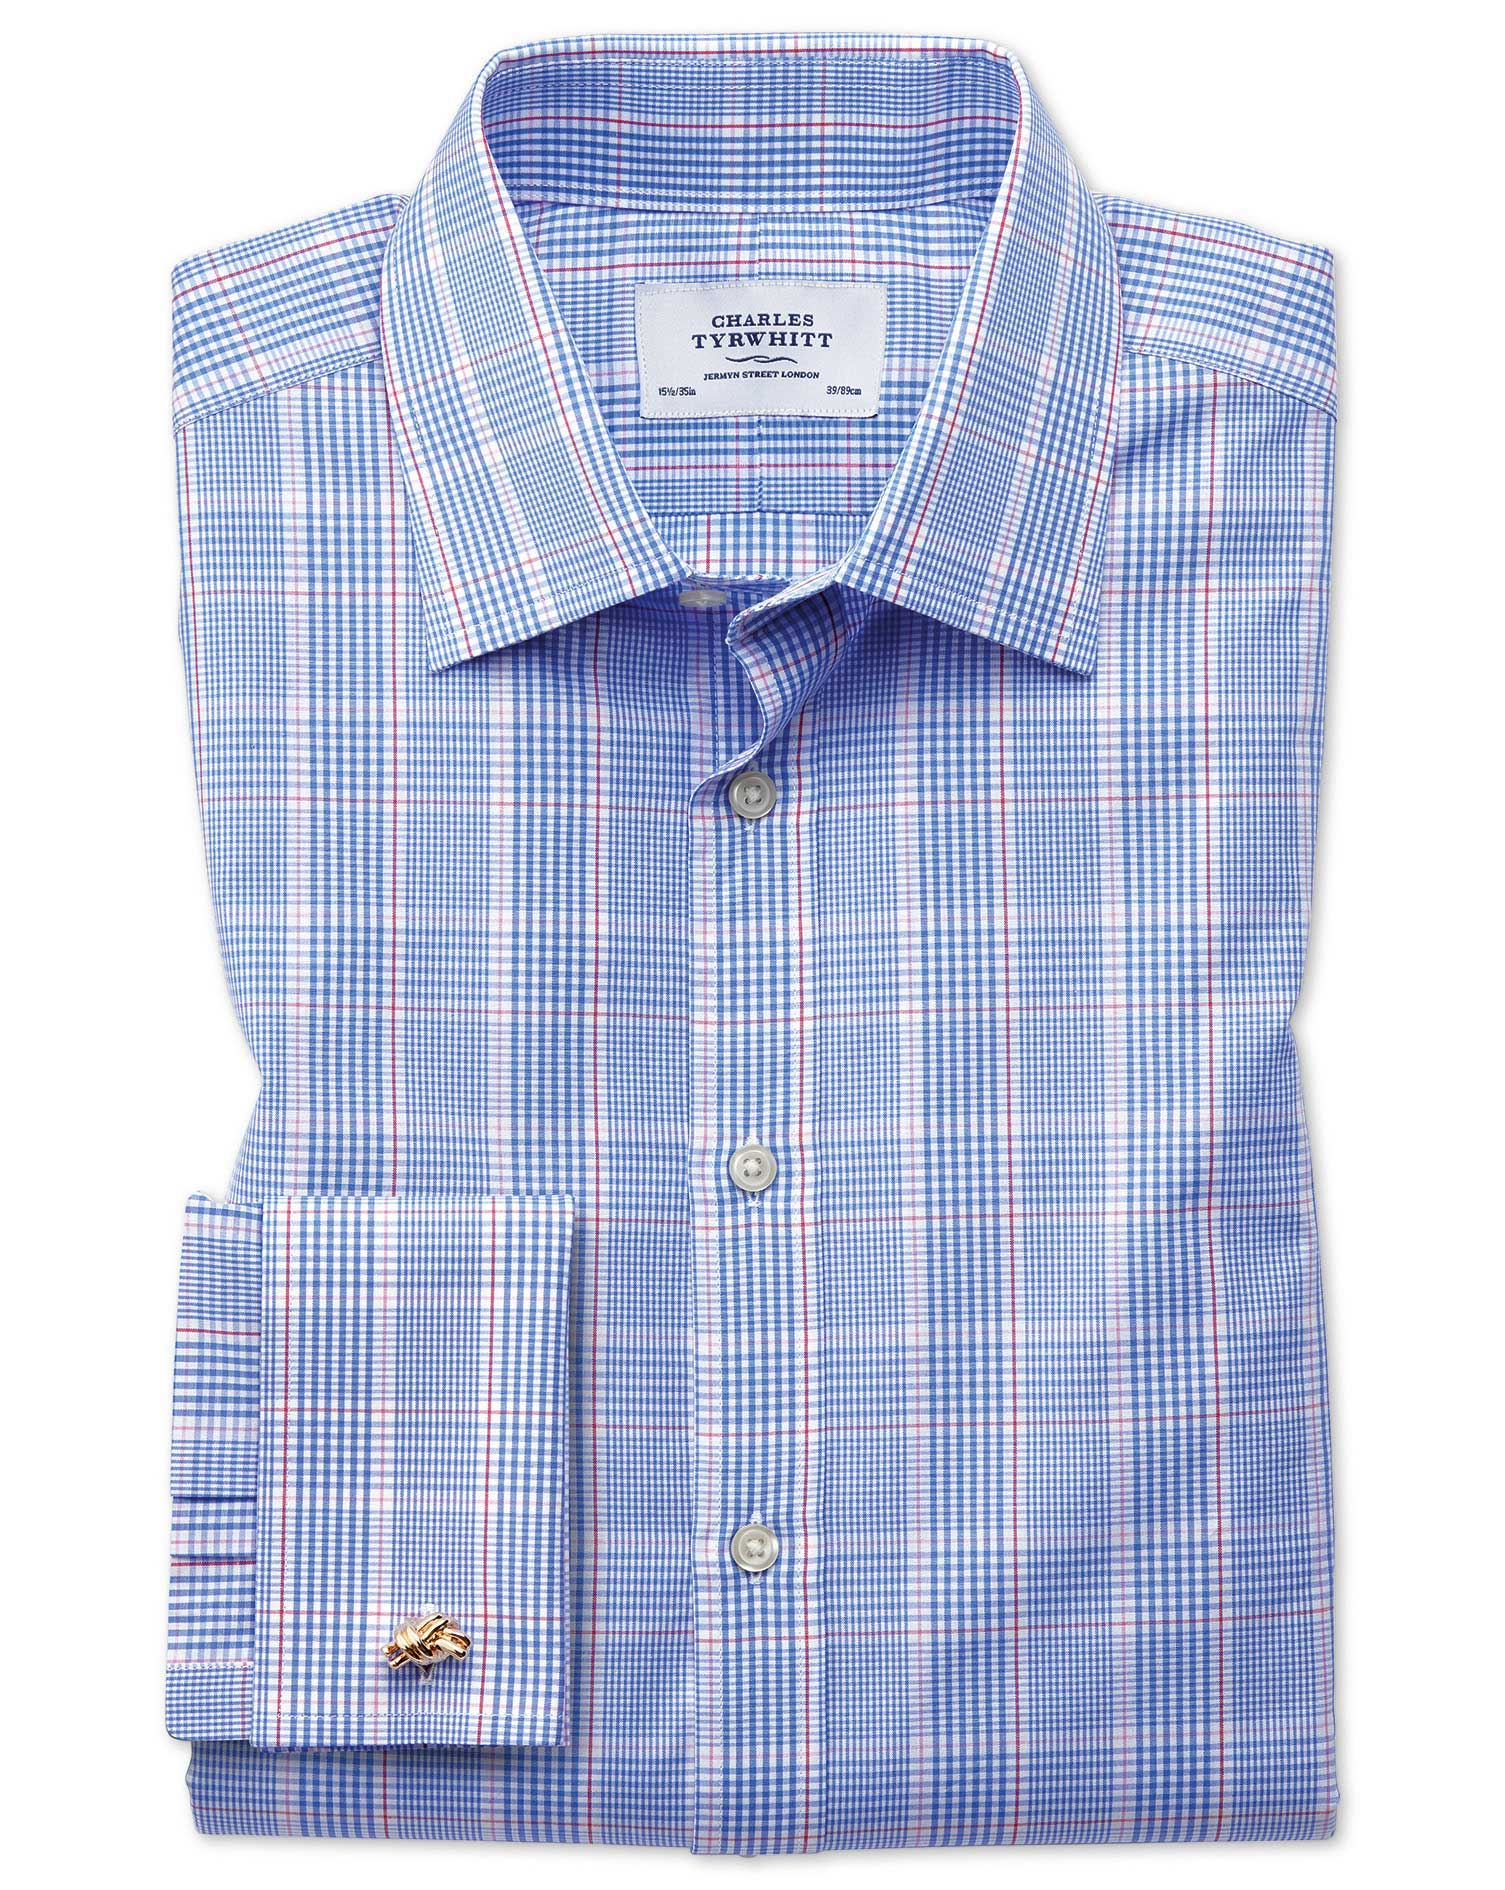 Classic Fit Prince Of Wales Blue Cotton Formal Shirt Single Cuff Size 15/35 by Charles Tyrwhitt